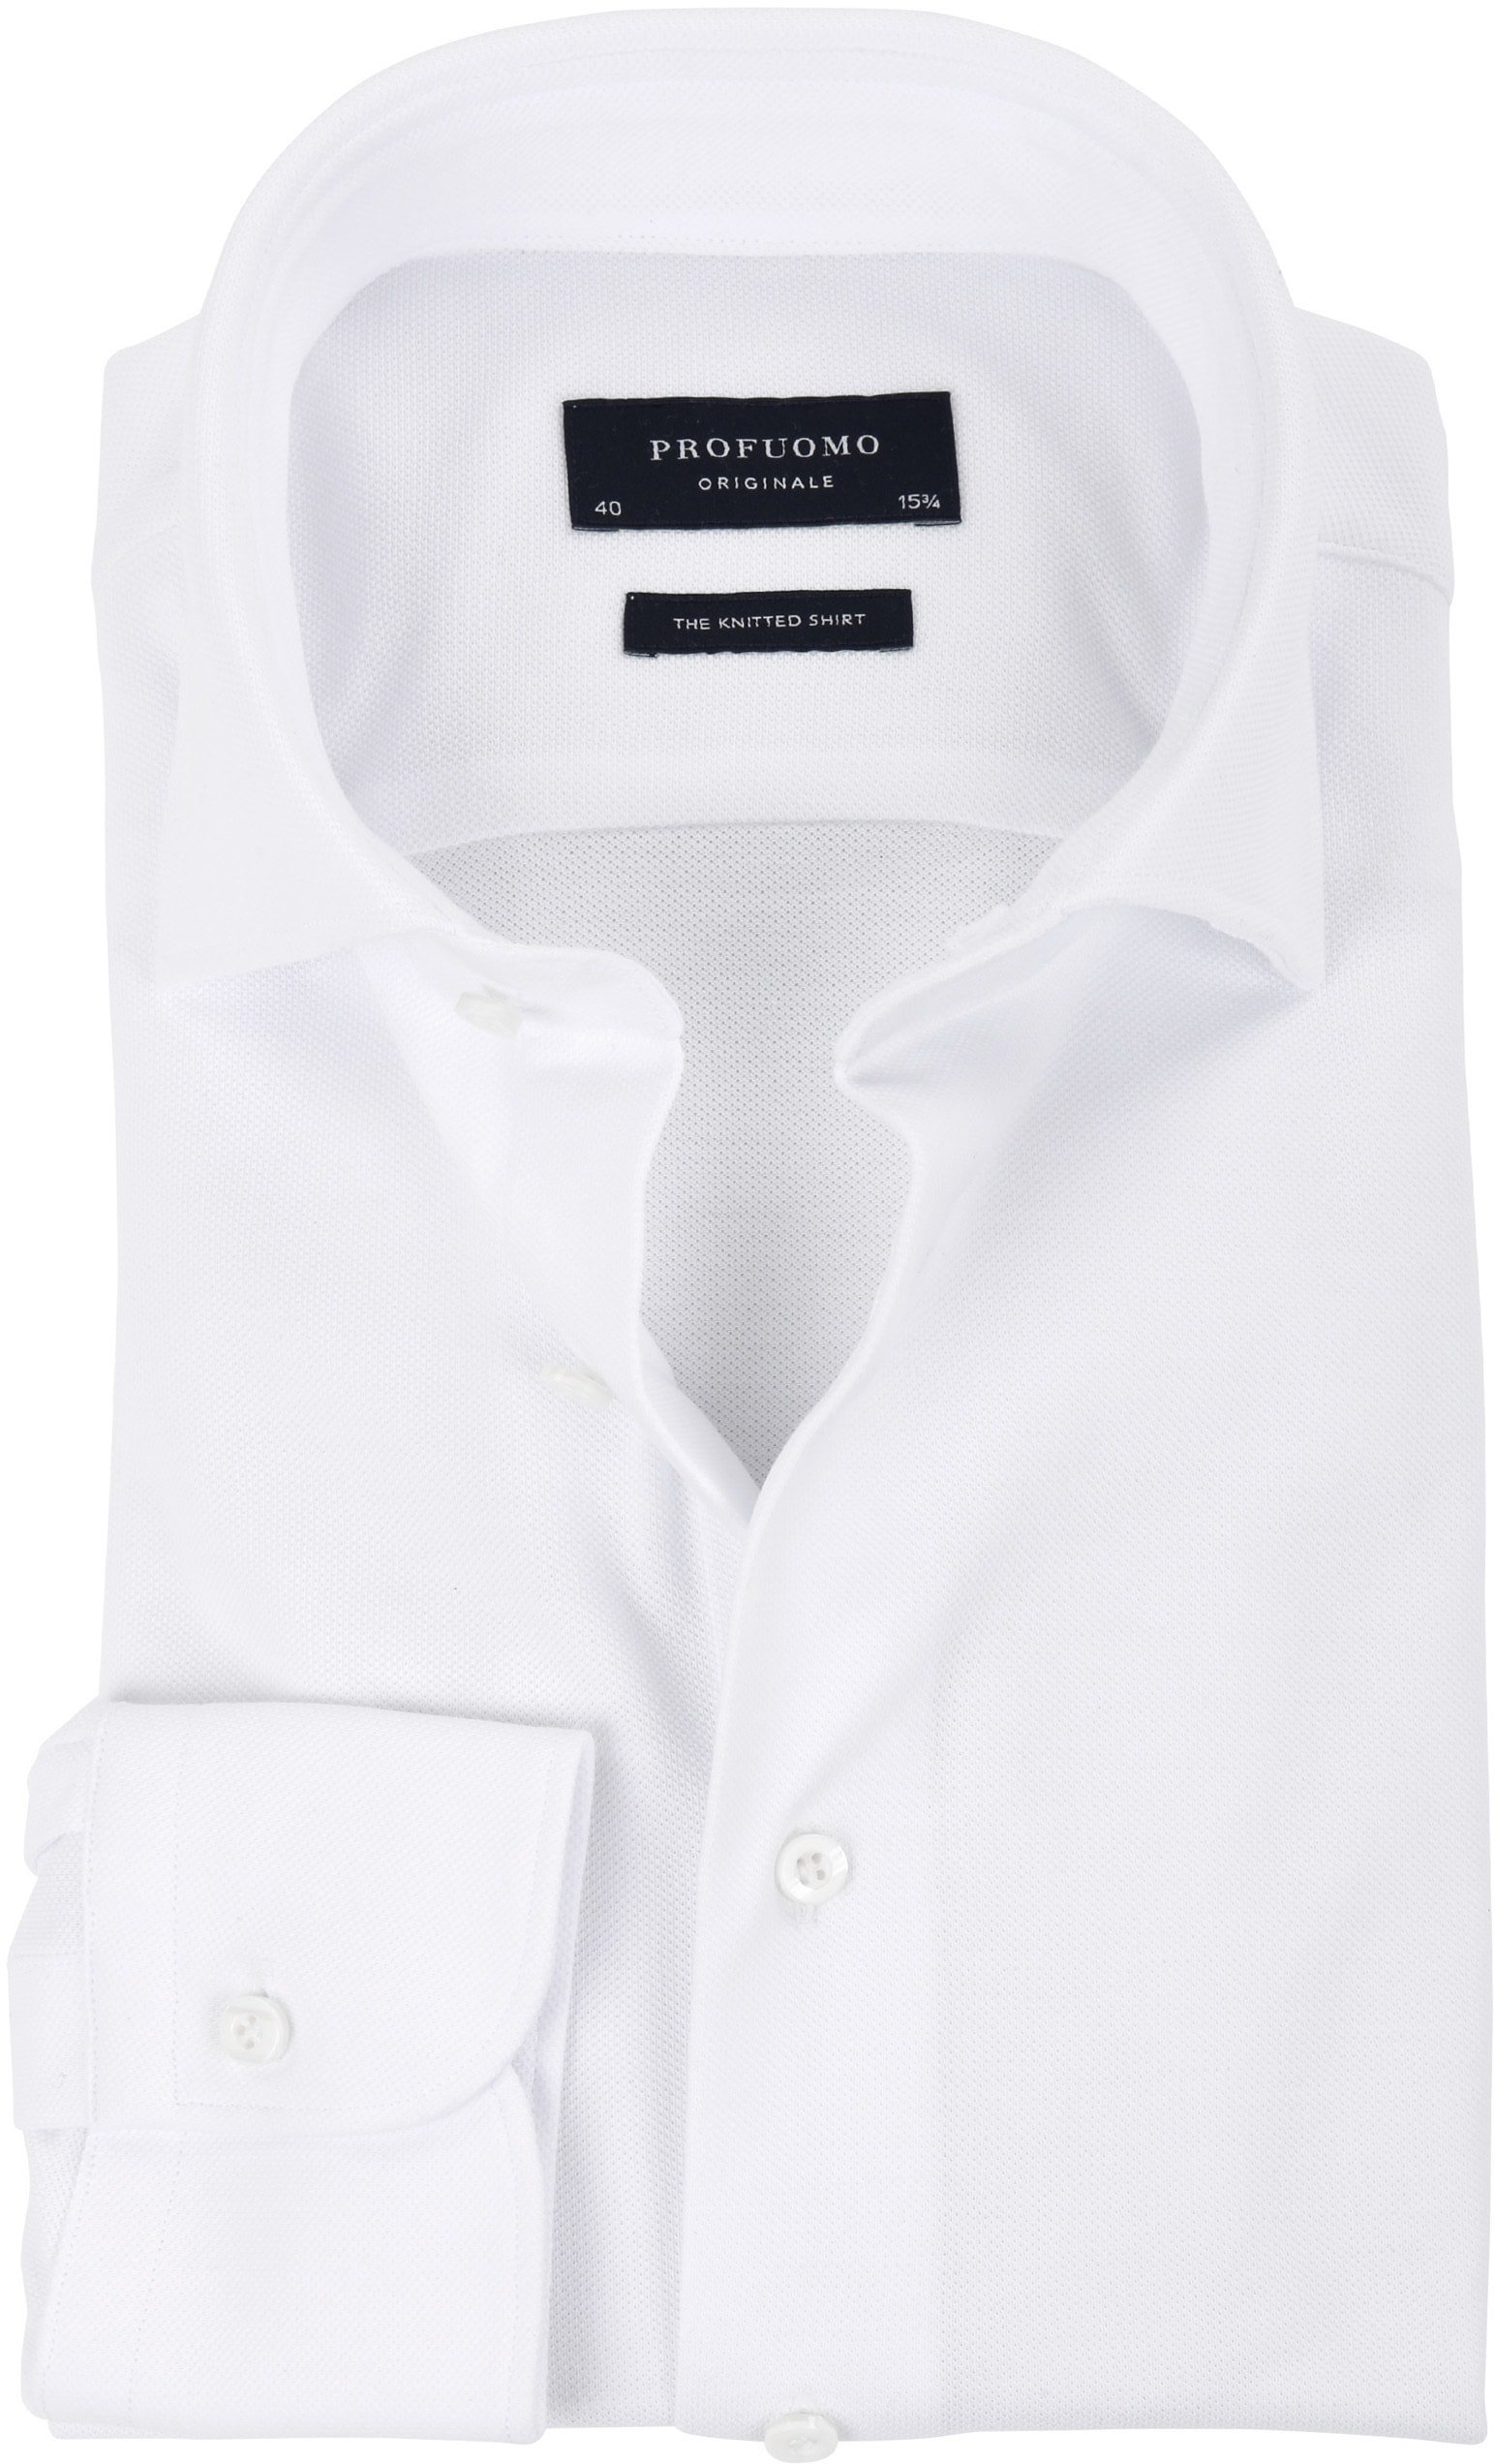 Profuomo Shirt Knitted White WS